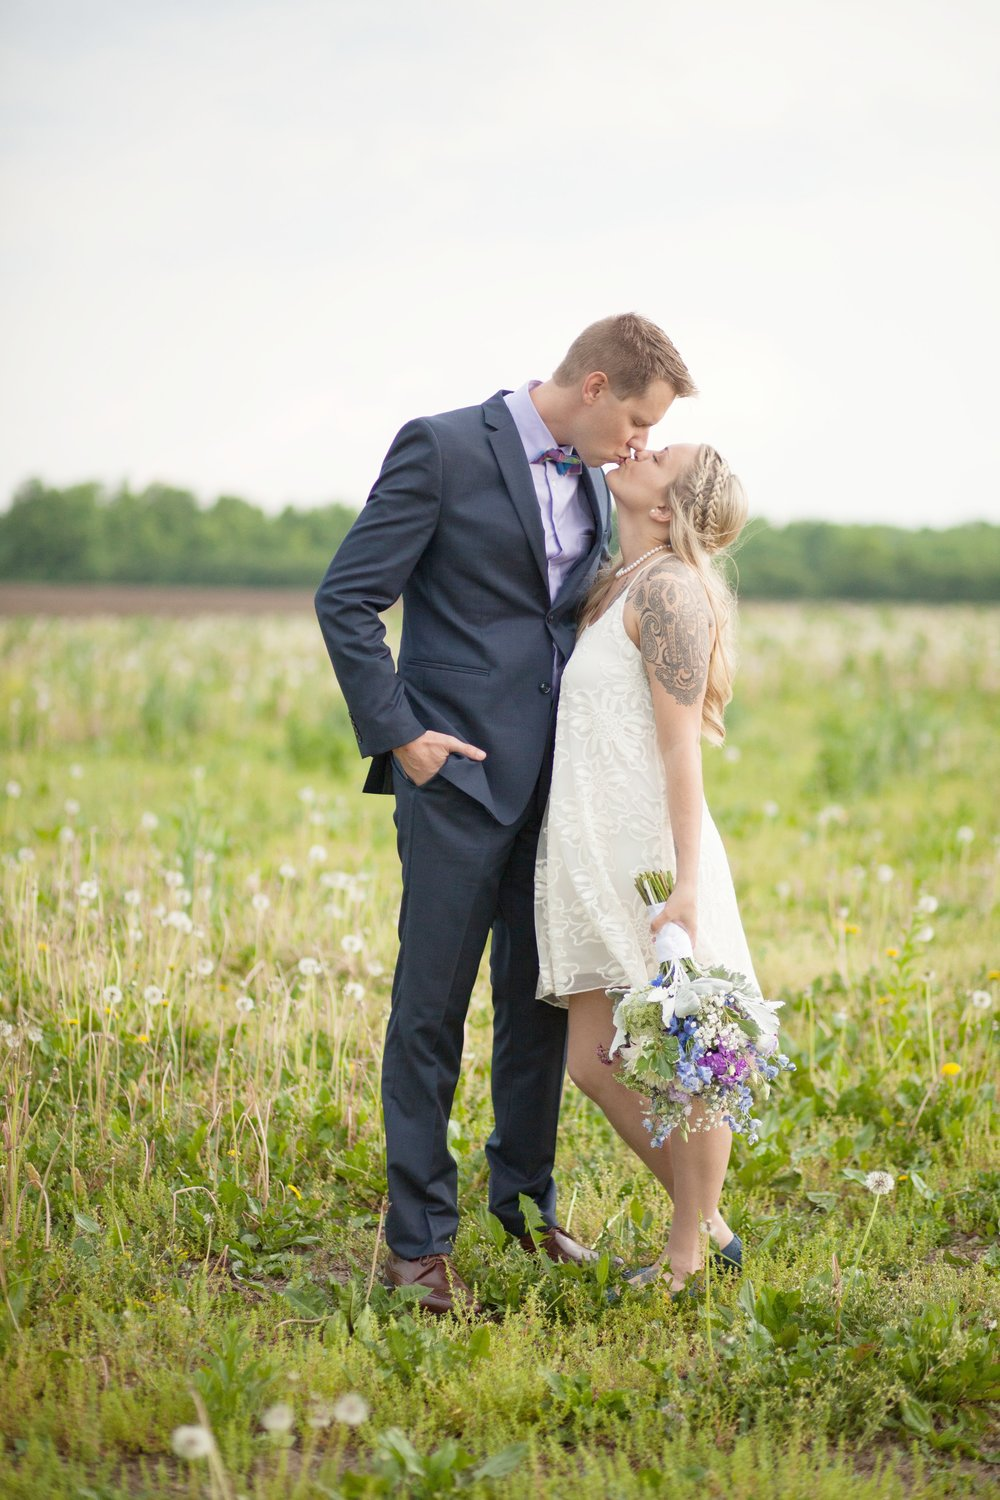 """""""Dani was so great to work with! Our pictures were beautiful - she made us look like we had just stepped out of a bridal magazine! My husband does not like having his picture taken and she made him feel very comfortable! We would definitely recommend Dani to anyone looking for a photographer and we will definitely go back to her in the future!""""- Caitlin & Jacob"""